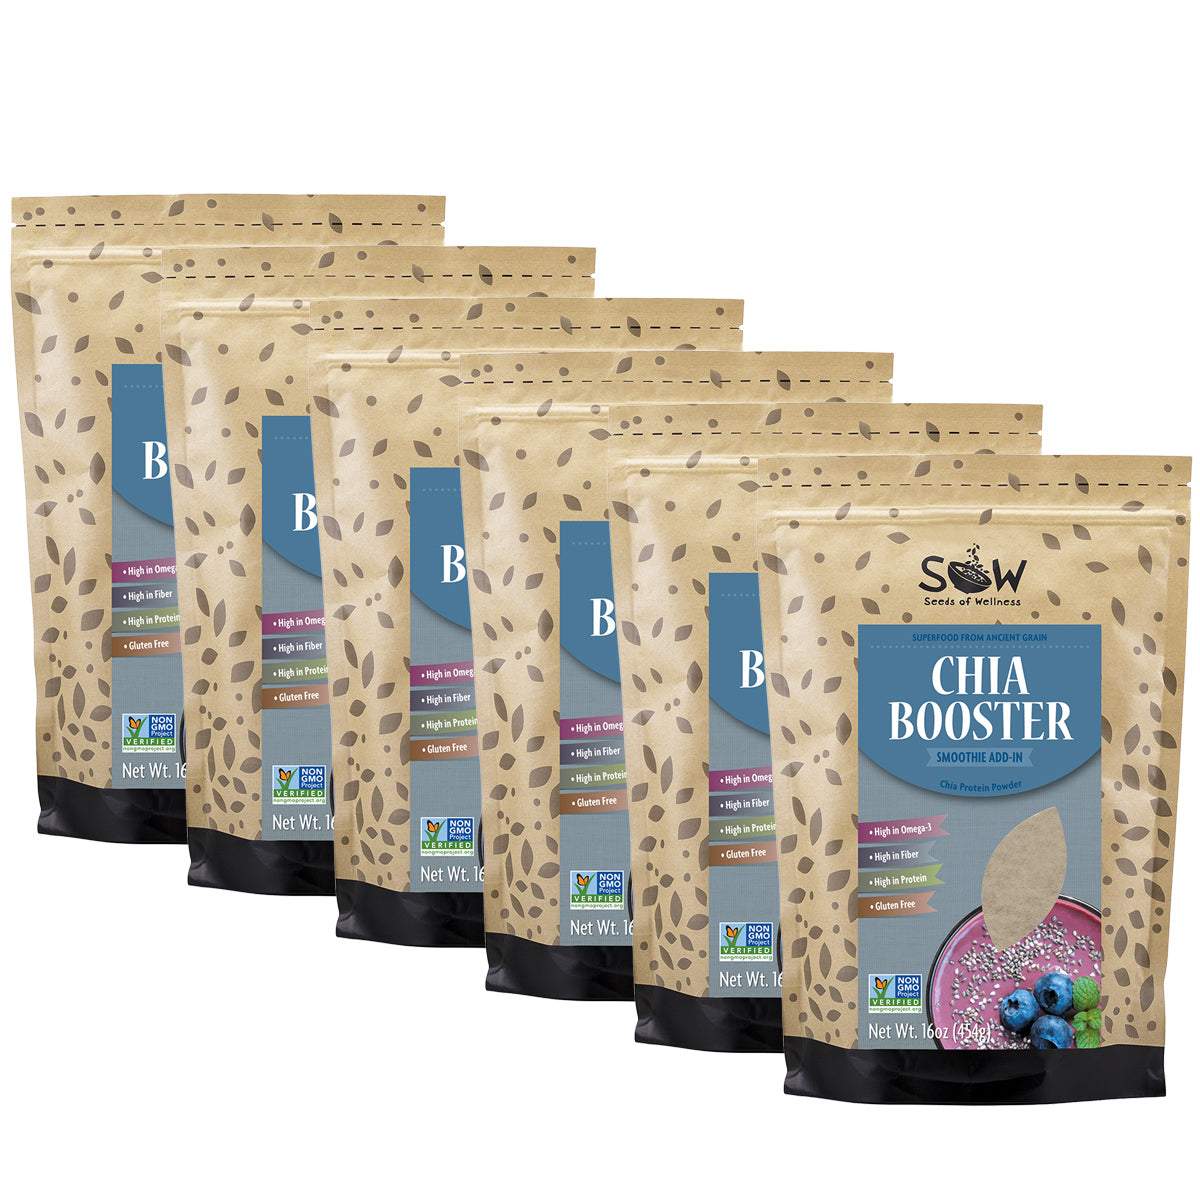 CHIA BOOSTER 6-PACK, GET 6 PAY 5